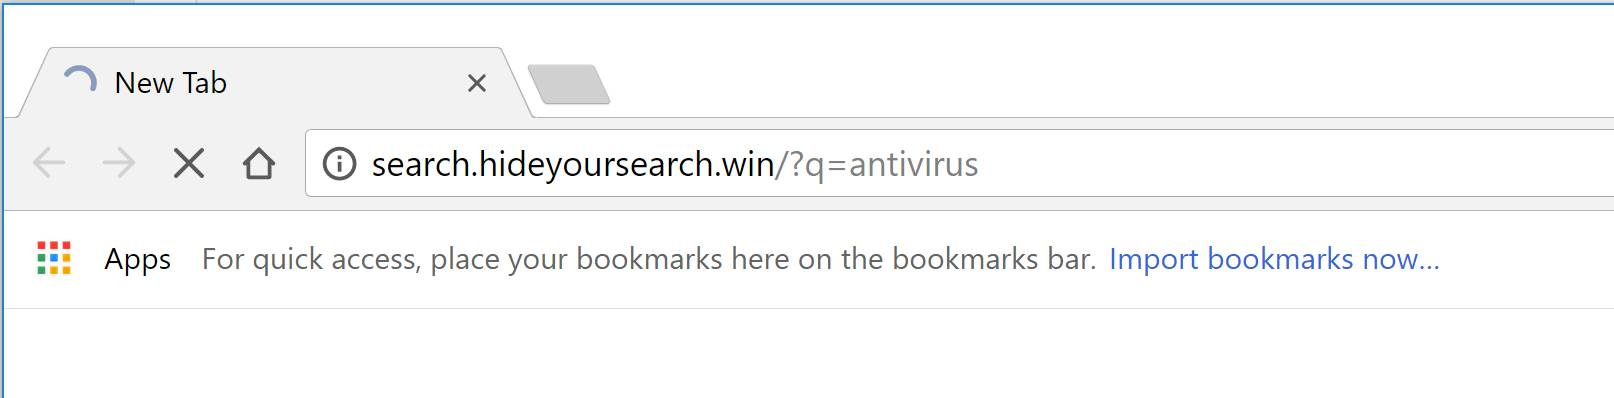 Search.hideyoursearch.win redirect virus